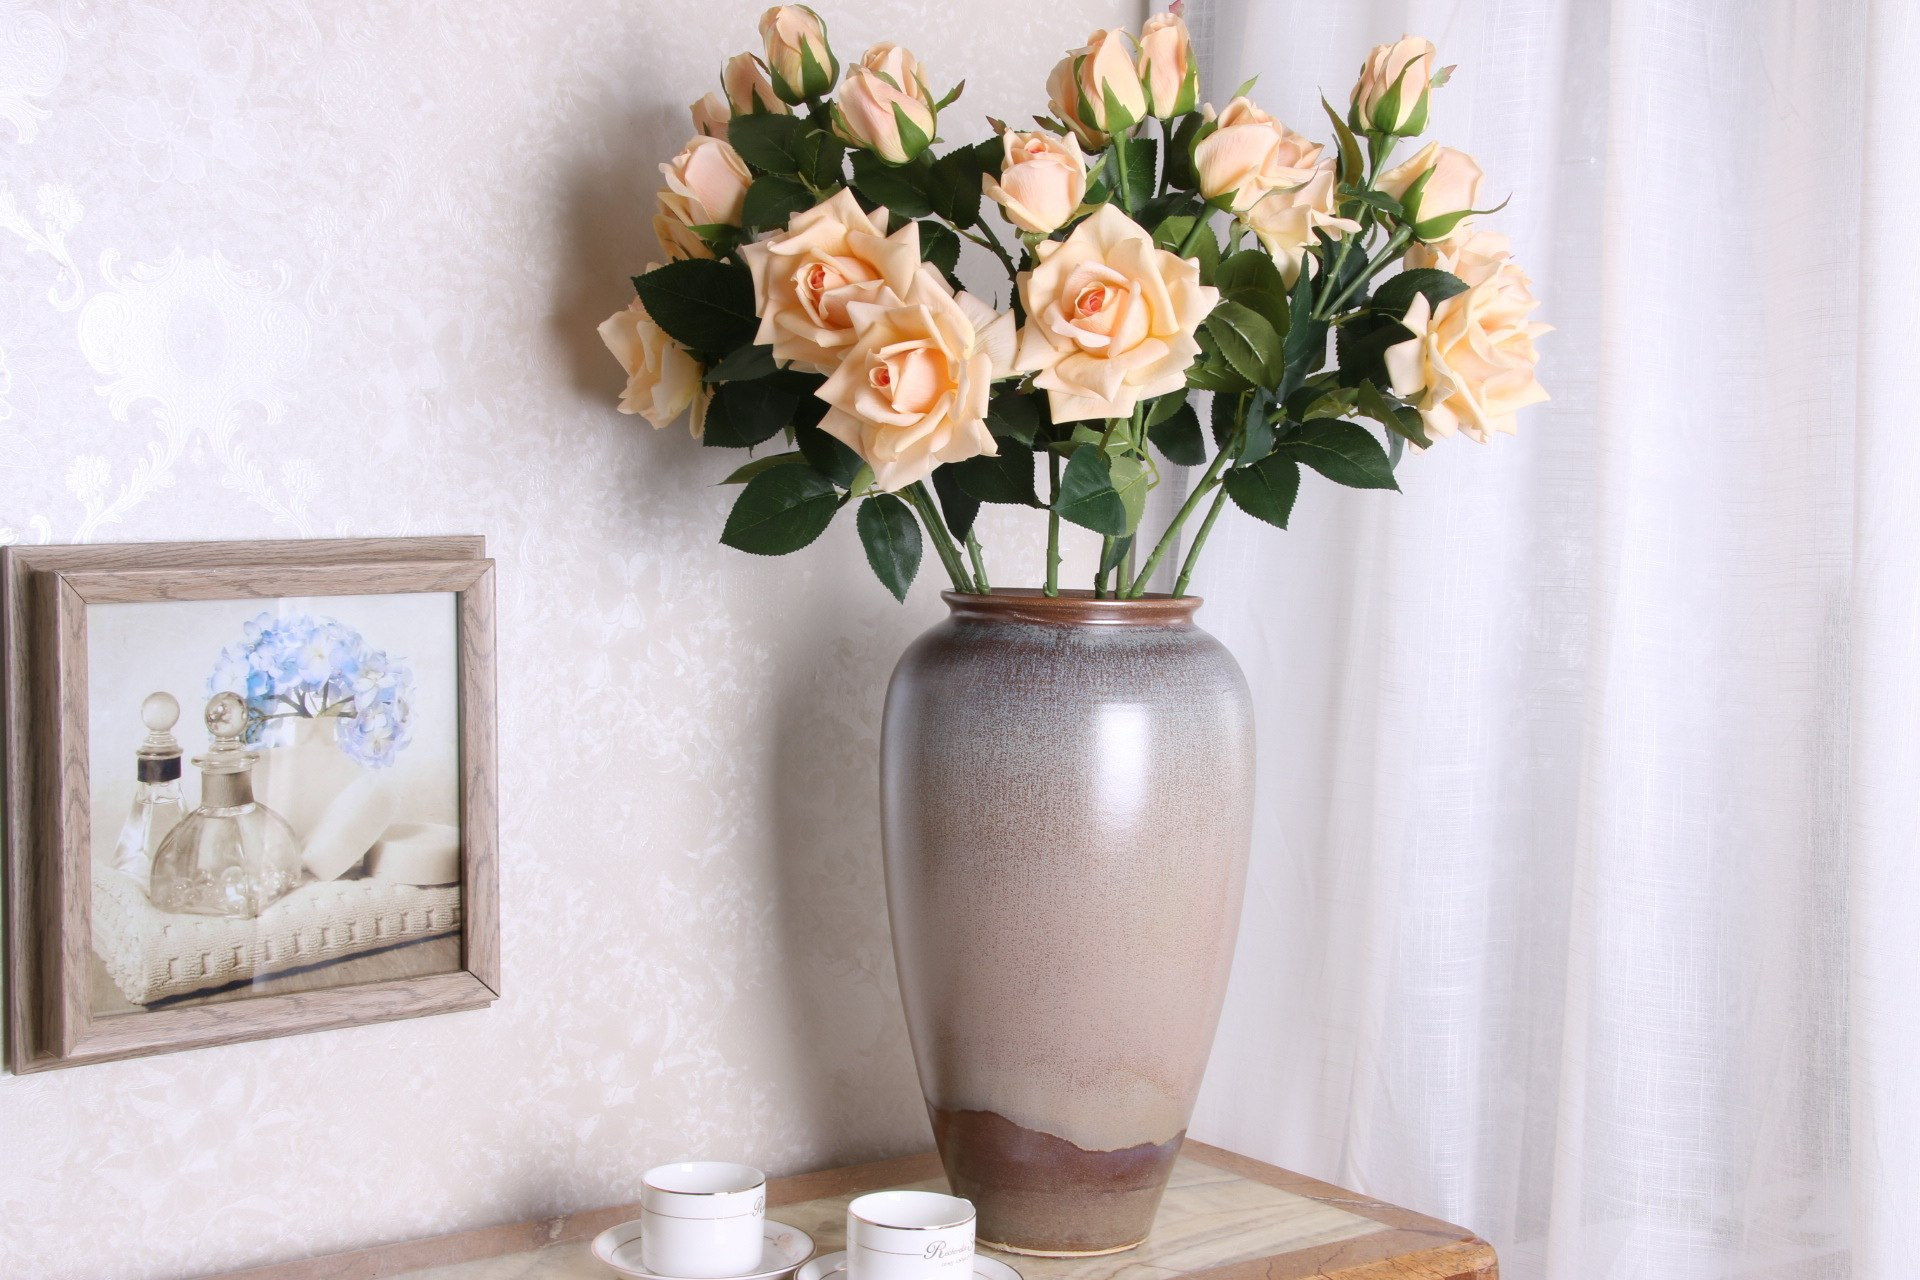 21 Amazing Window Sill Vases 2021 free download window sill vases of 3pcs moisturizing roses 3 heads silk flower h q wedding bouquet for other descriptionbecause every branch is too long we will bend them for package when you receive the